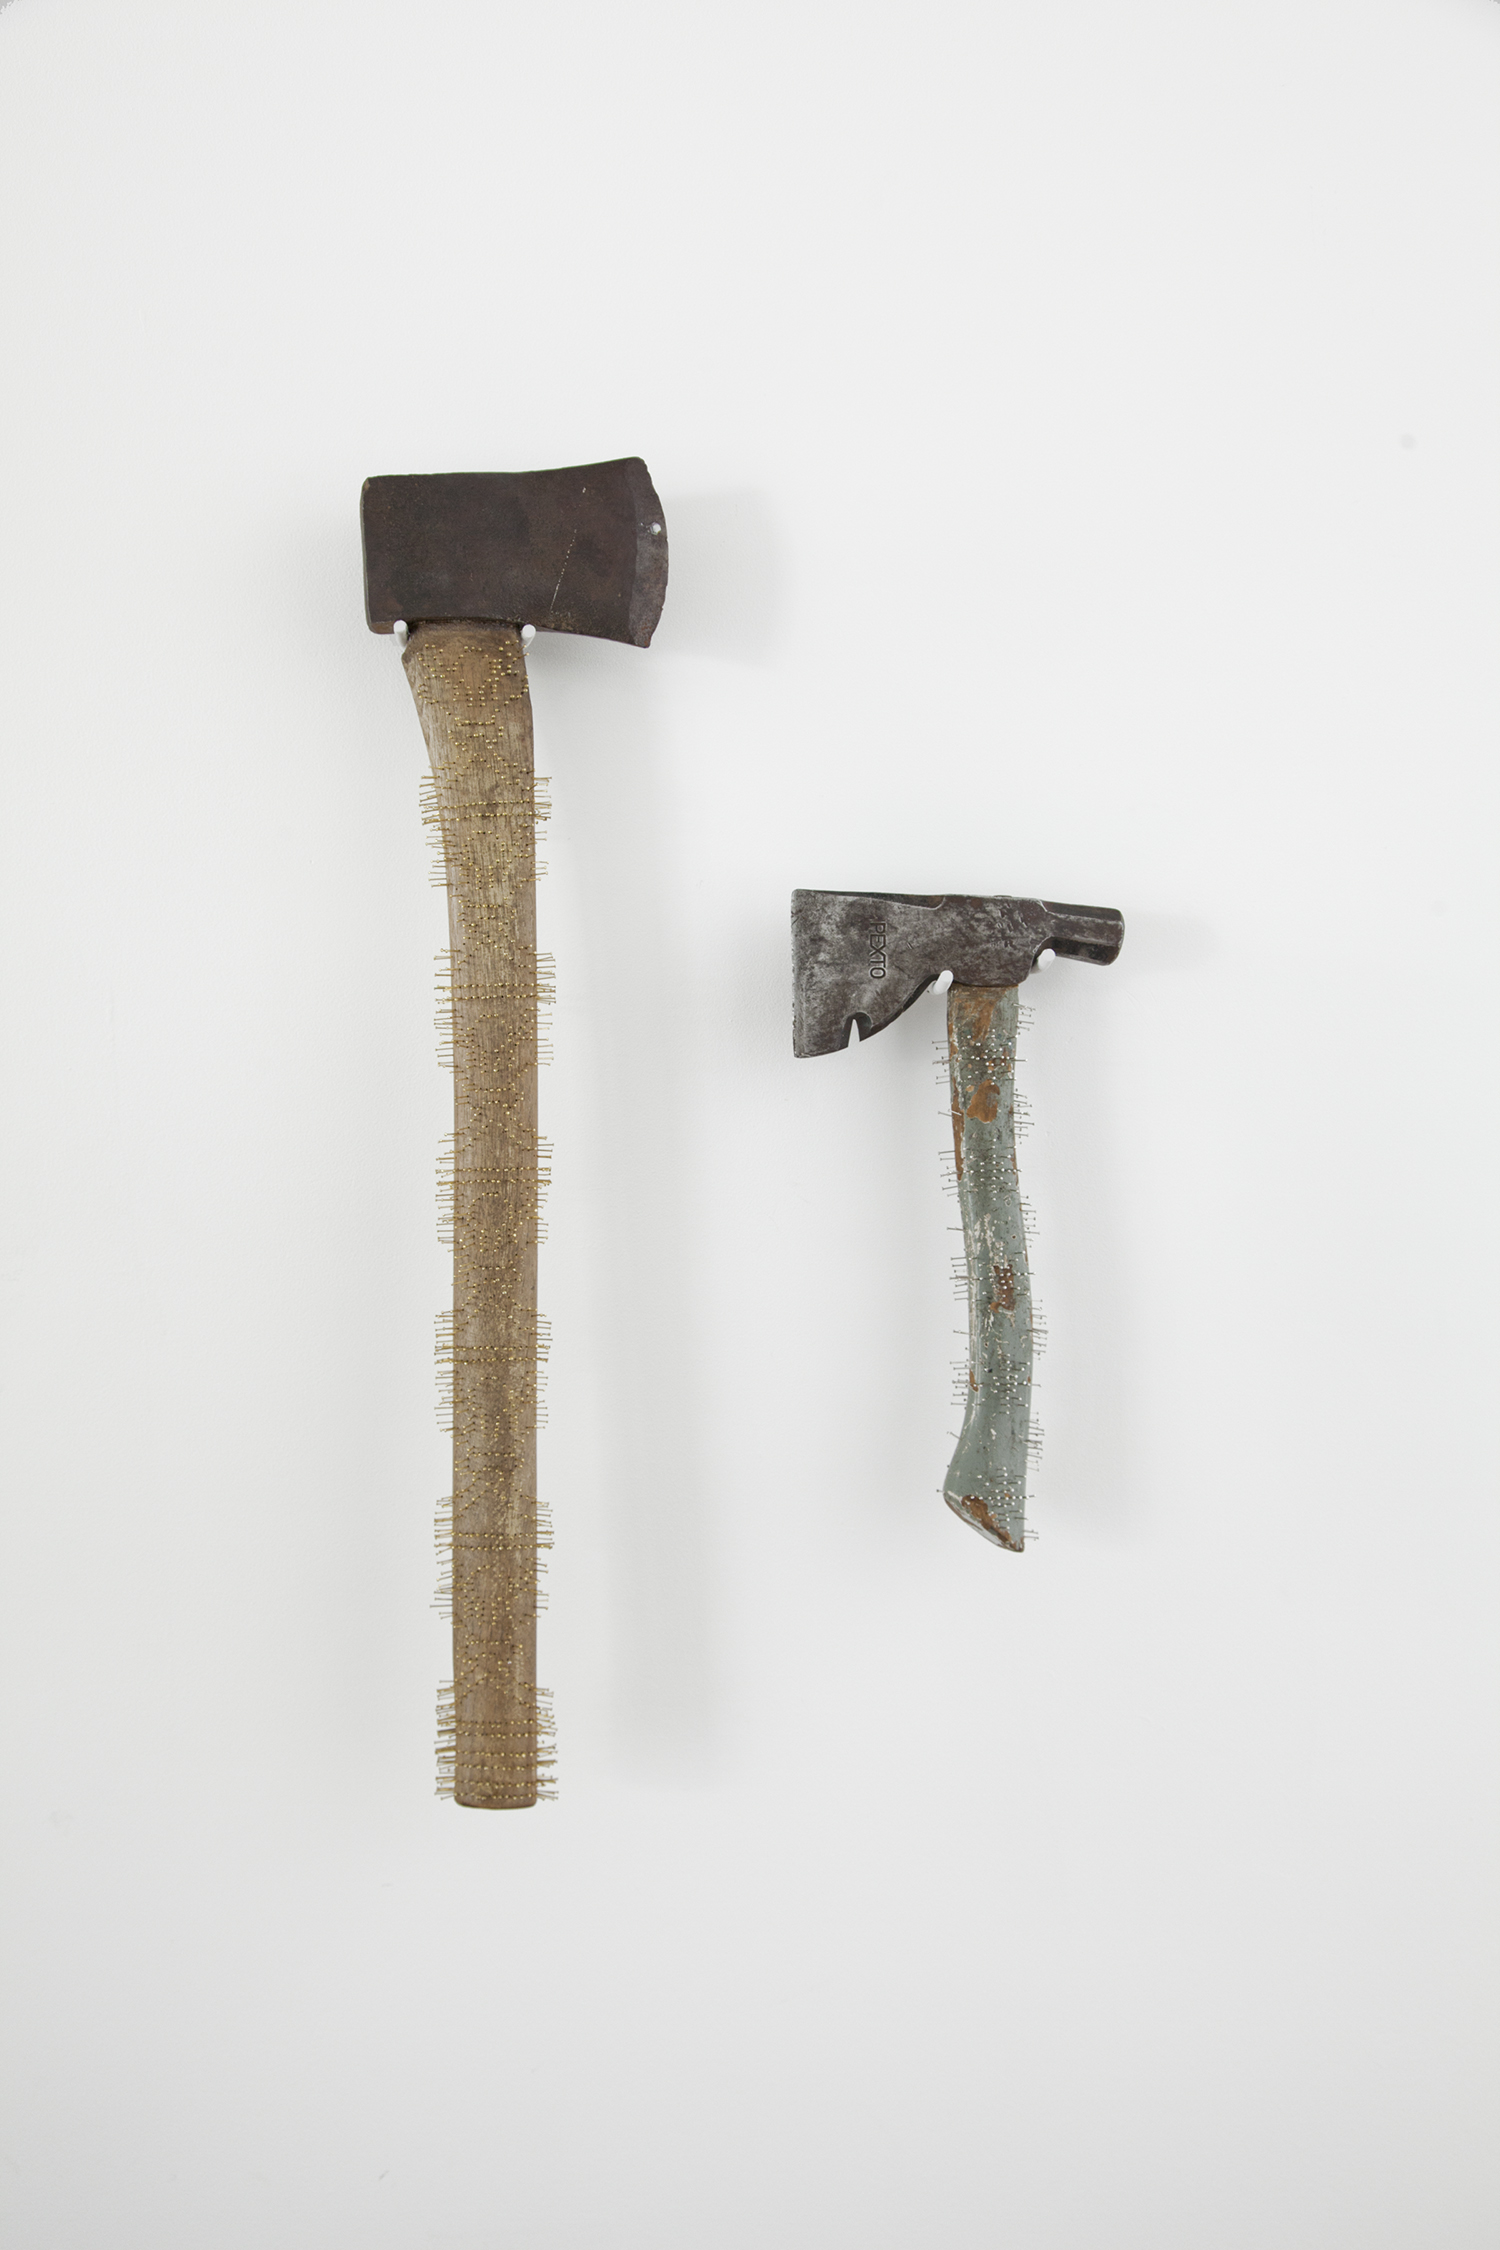 long axe  and  periwinkle axe  2017 found axes, straight pins 24 x 6 x 1.5 inches and 12 x 6.5 x 1.5 inches